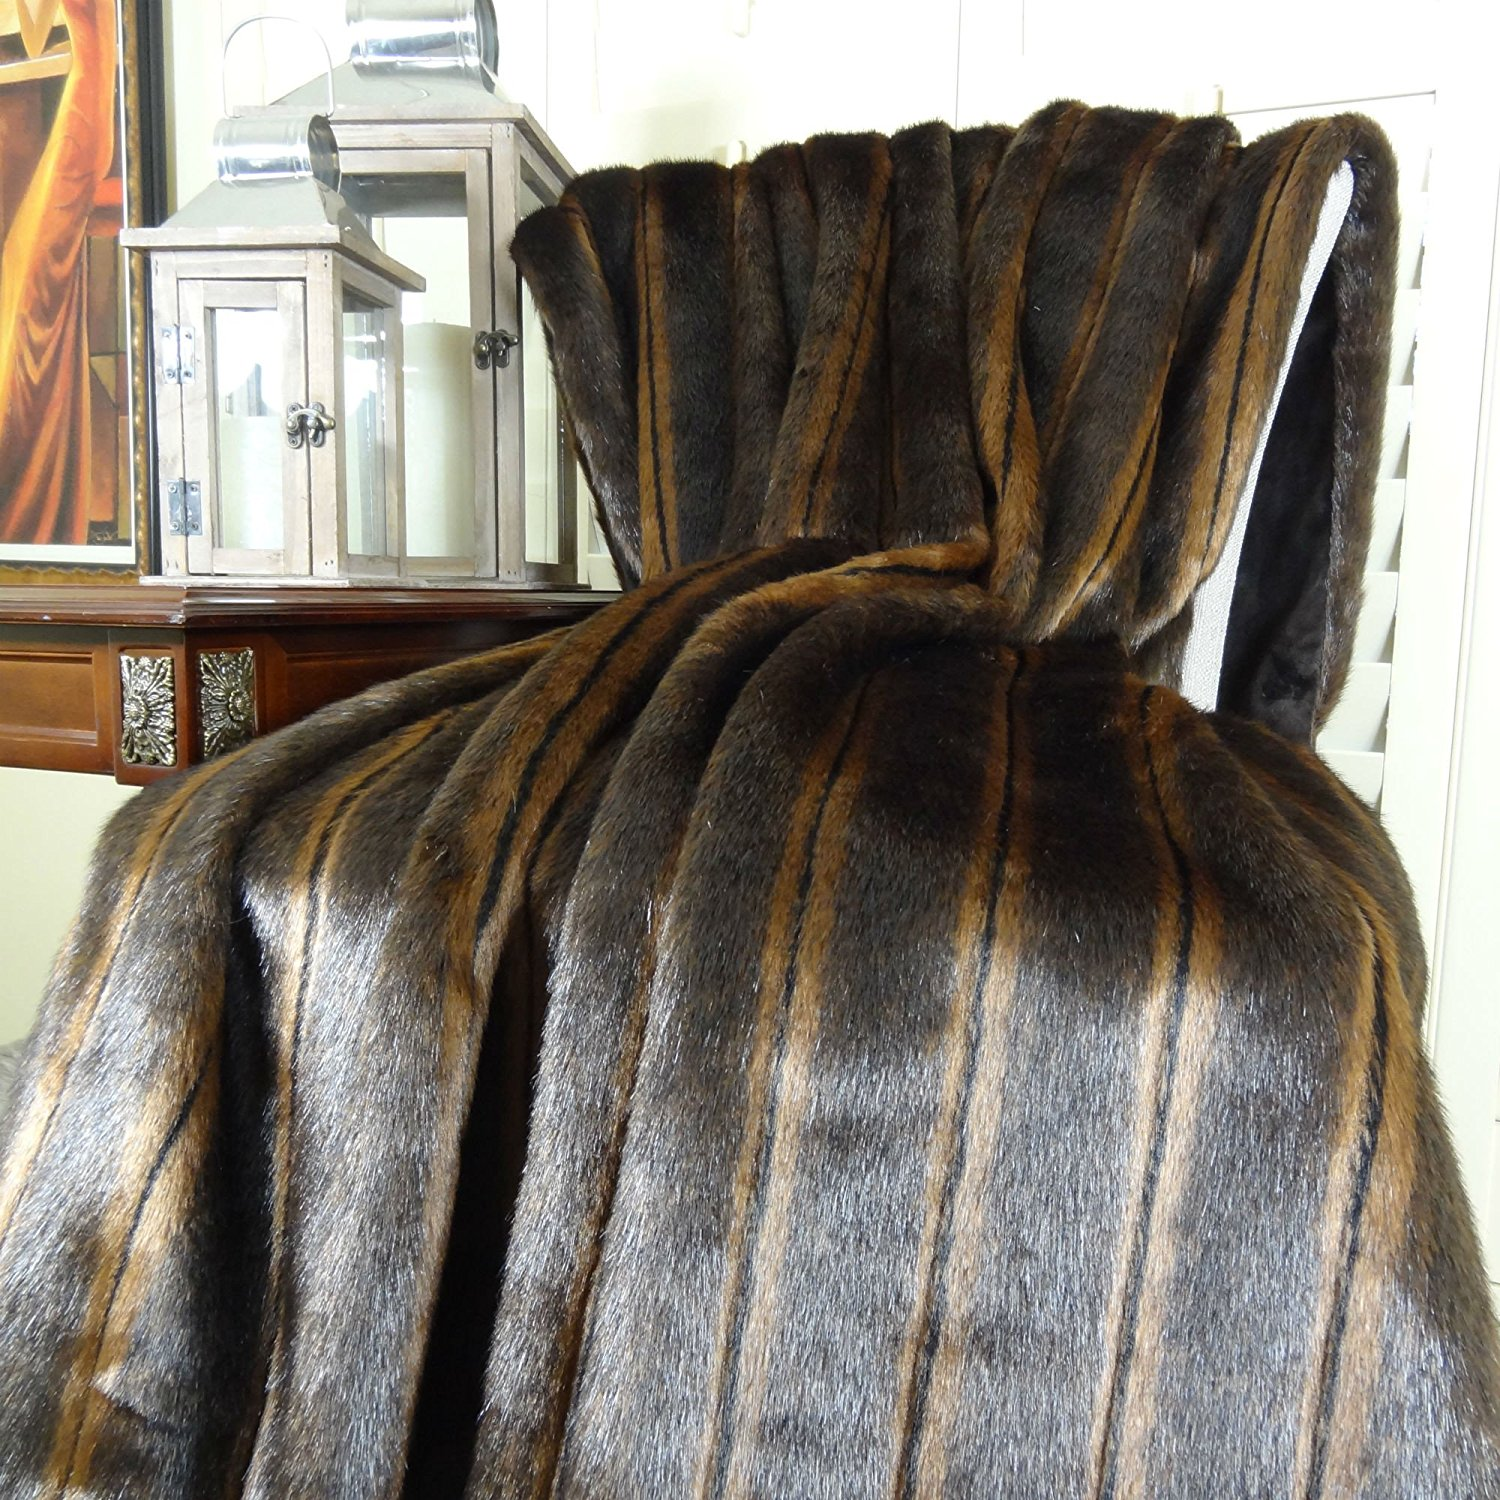 Thomas Collection handmade throw blanket, Luxury Brown Mink Two Tone Faux Fur Throw Blanket & Bedspread, Mink Fur, Made in USA, 16424